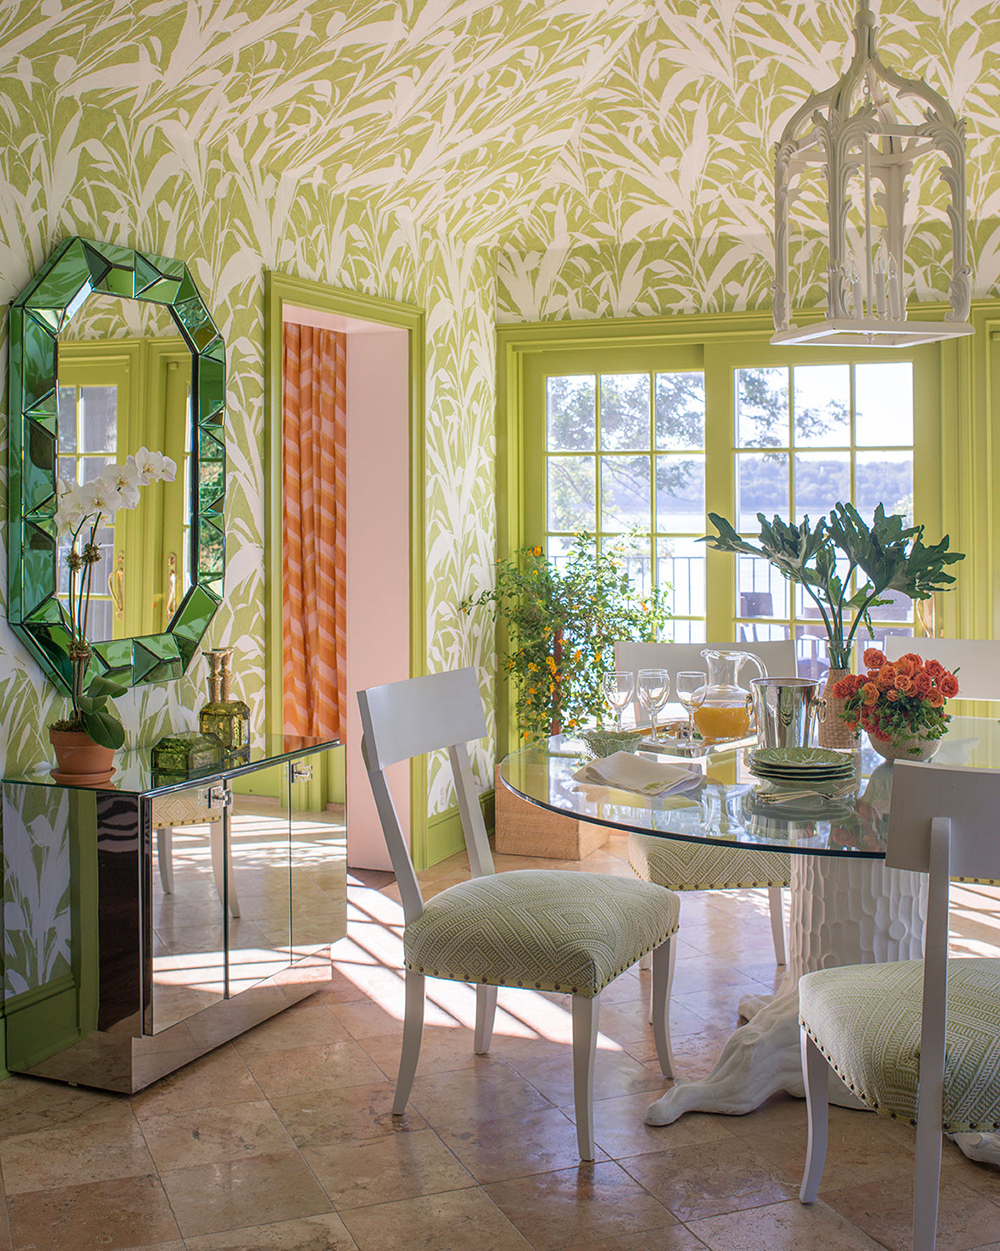 You can see more of her work here, her wallpapers here, her fabrics here and her shop here. I will keep dreaming about these rooms seeing as though ...